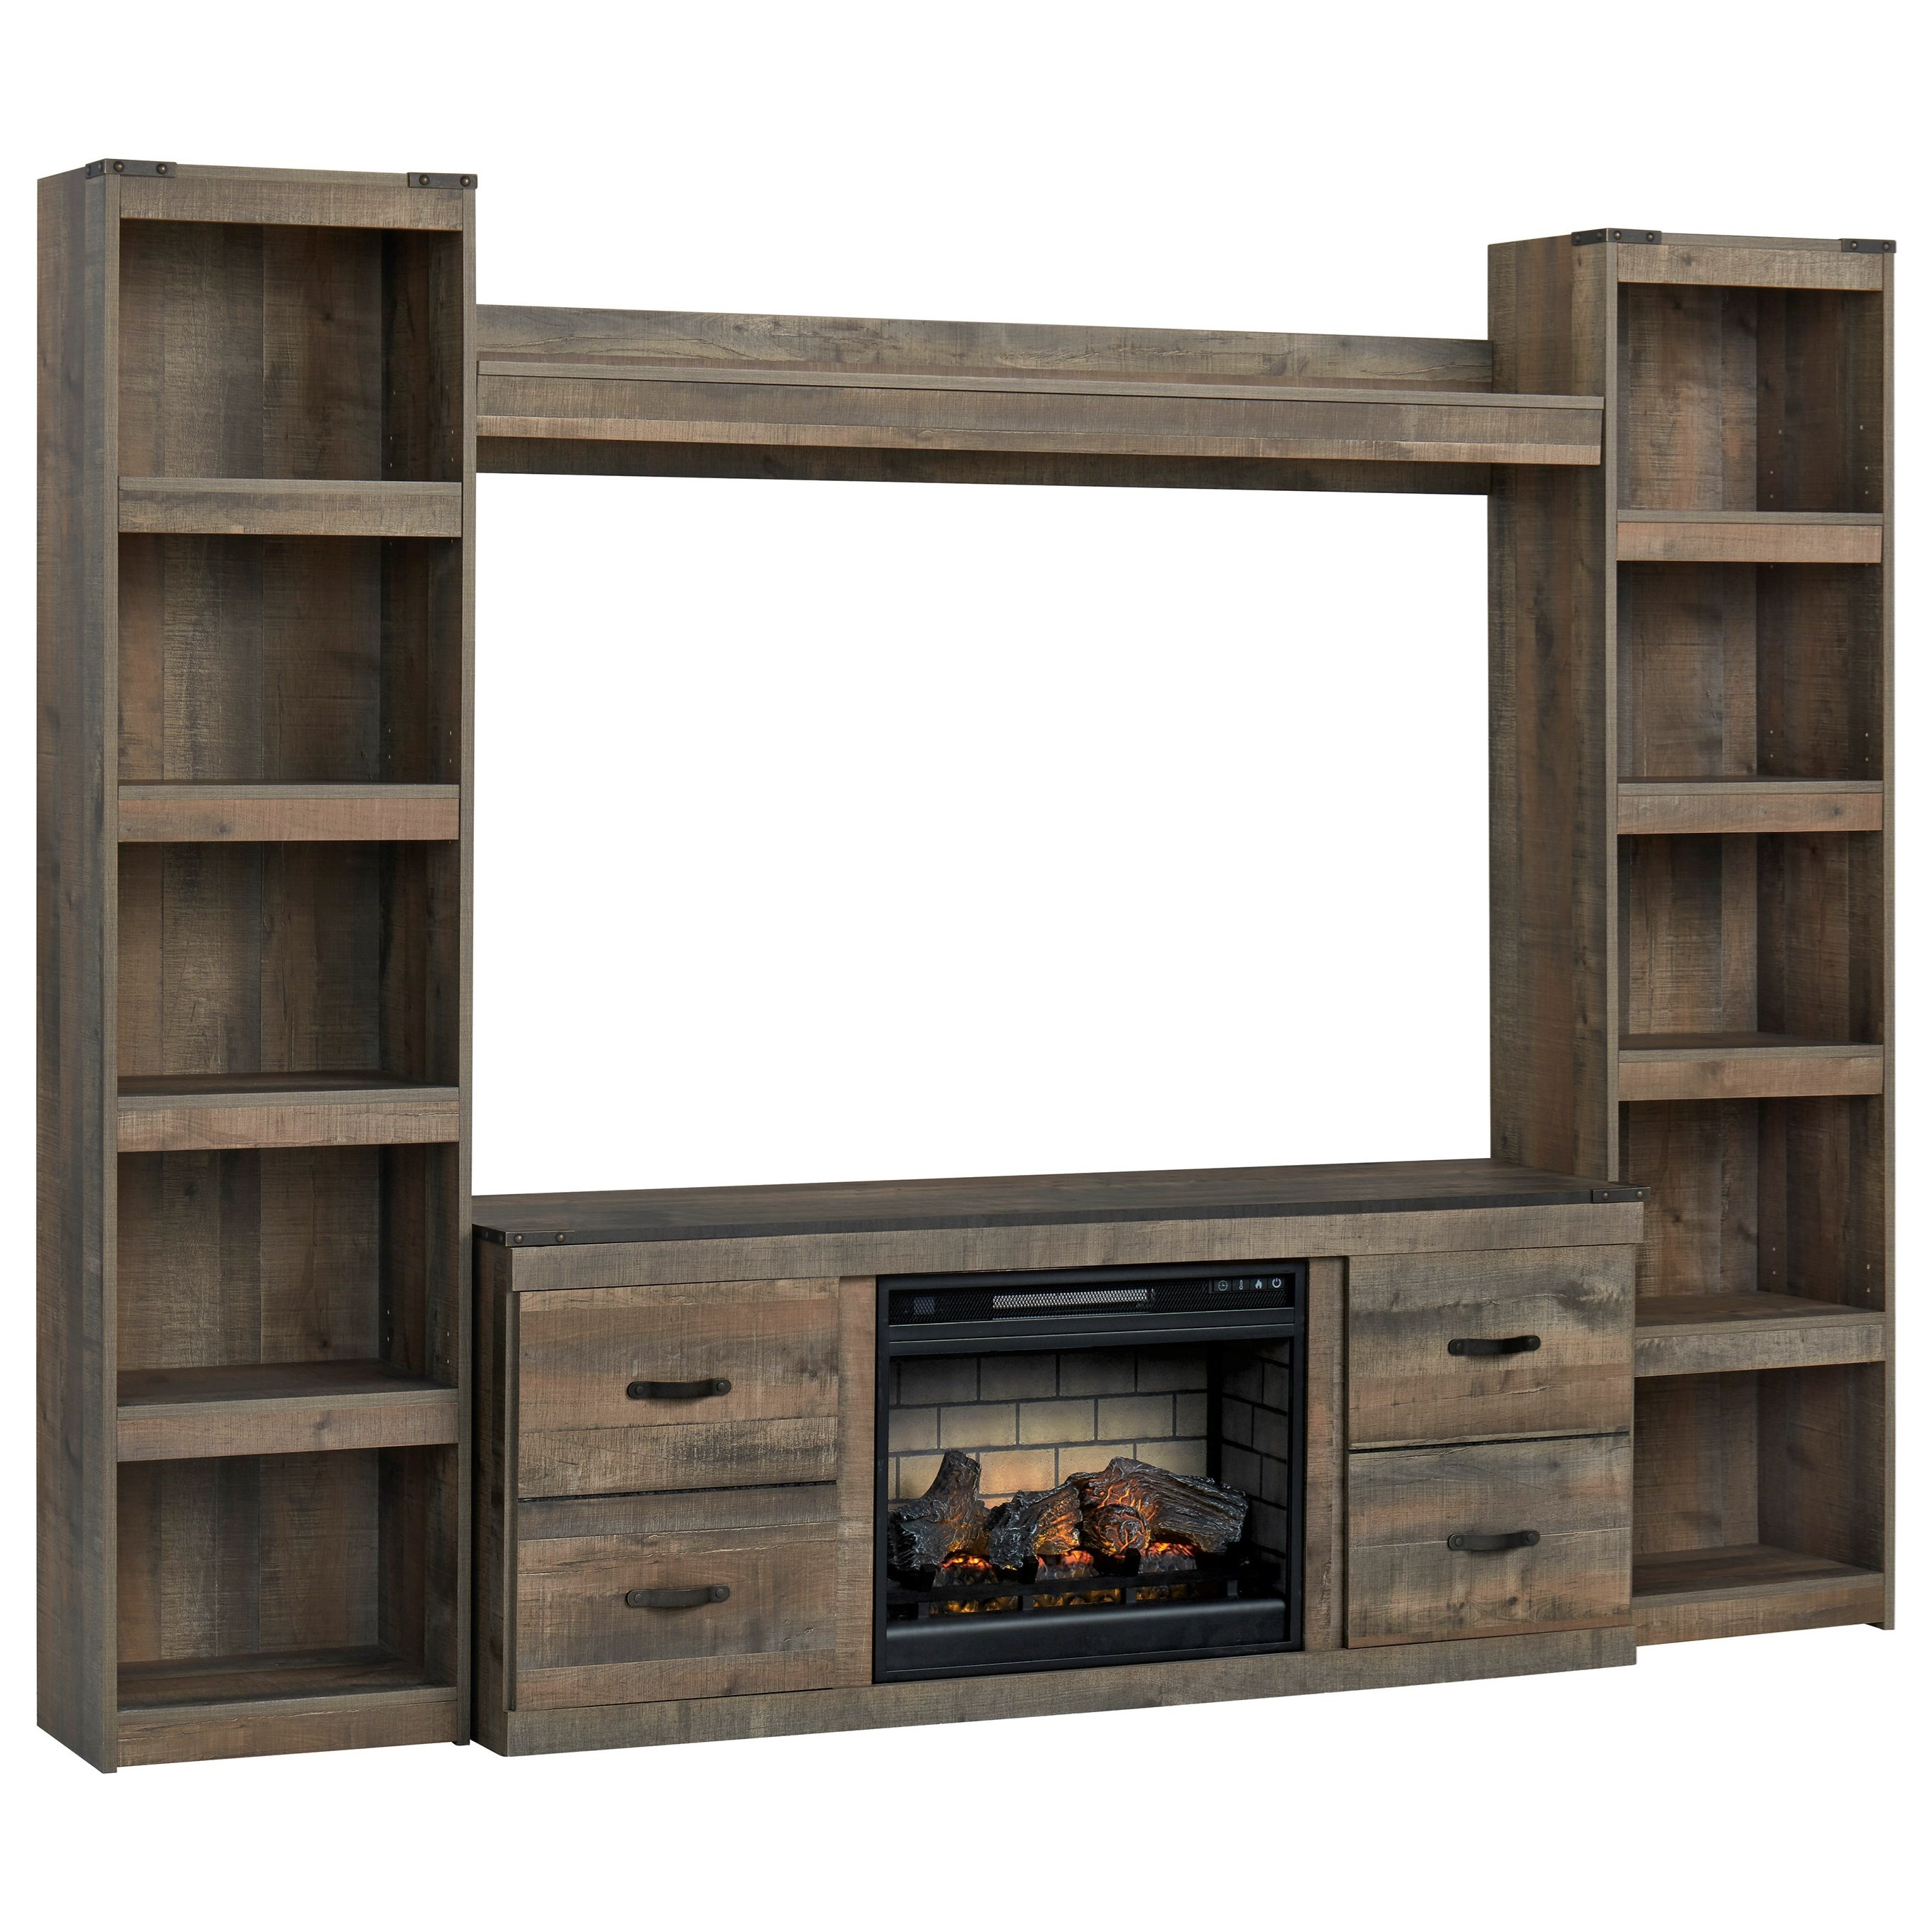 Trinell Entertainment Wall Unit w/ Fireplace by Signature Design by Ashley at Zak's Warehouse Clearance Center